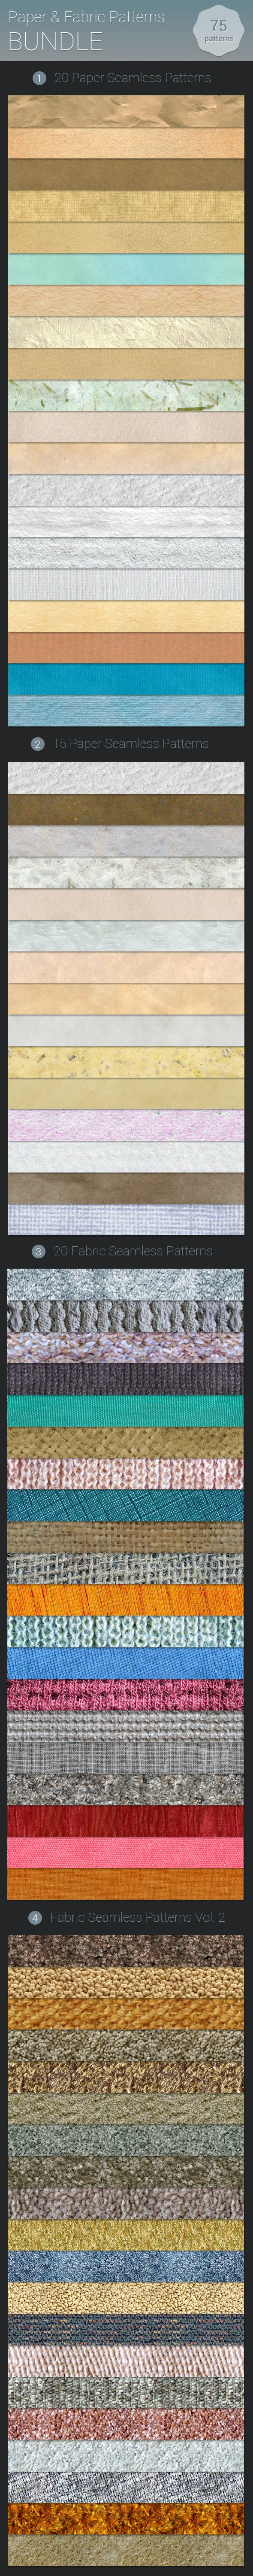 Paper and Fabric Patterns Bundle - Textures / Fills / Patterns Photoshop